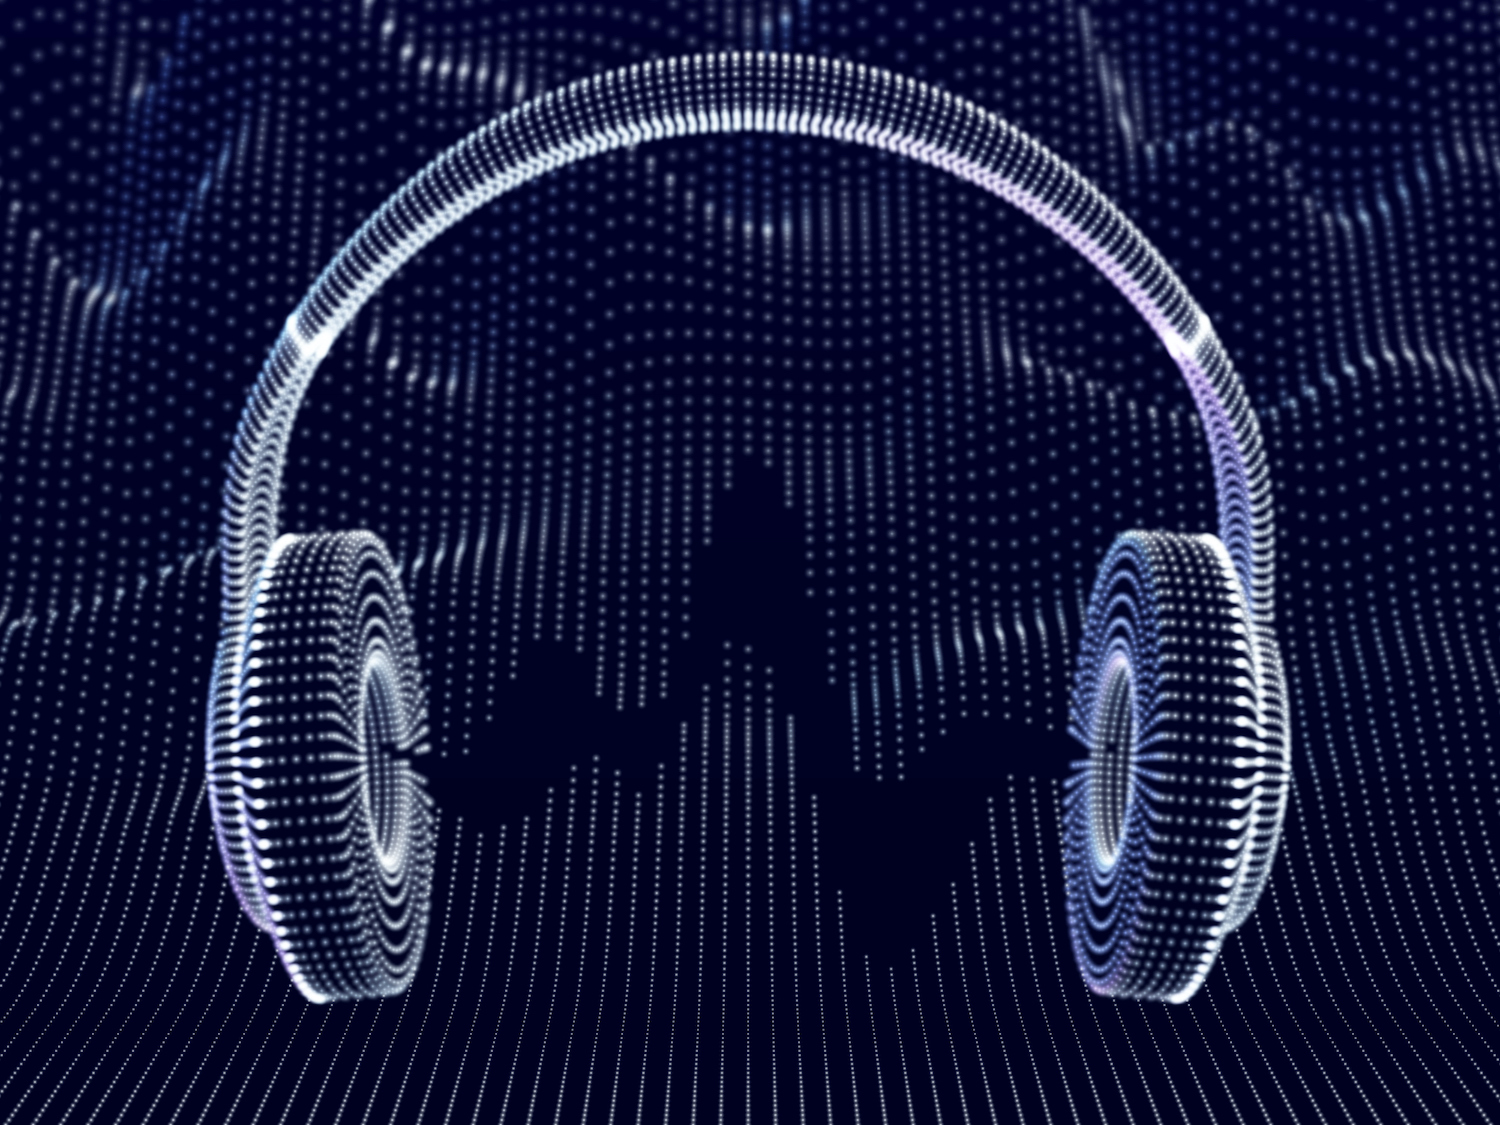 3D headphones with sound waves on dark background. Concept of electronic music listening and digital audio. Abstract visualization of digital sound waves and modern art. Vector illustration. (3D headphones with sound waves on dark background. Concept